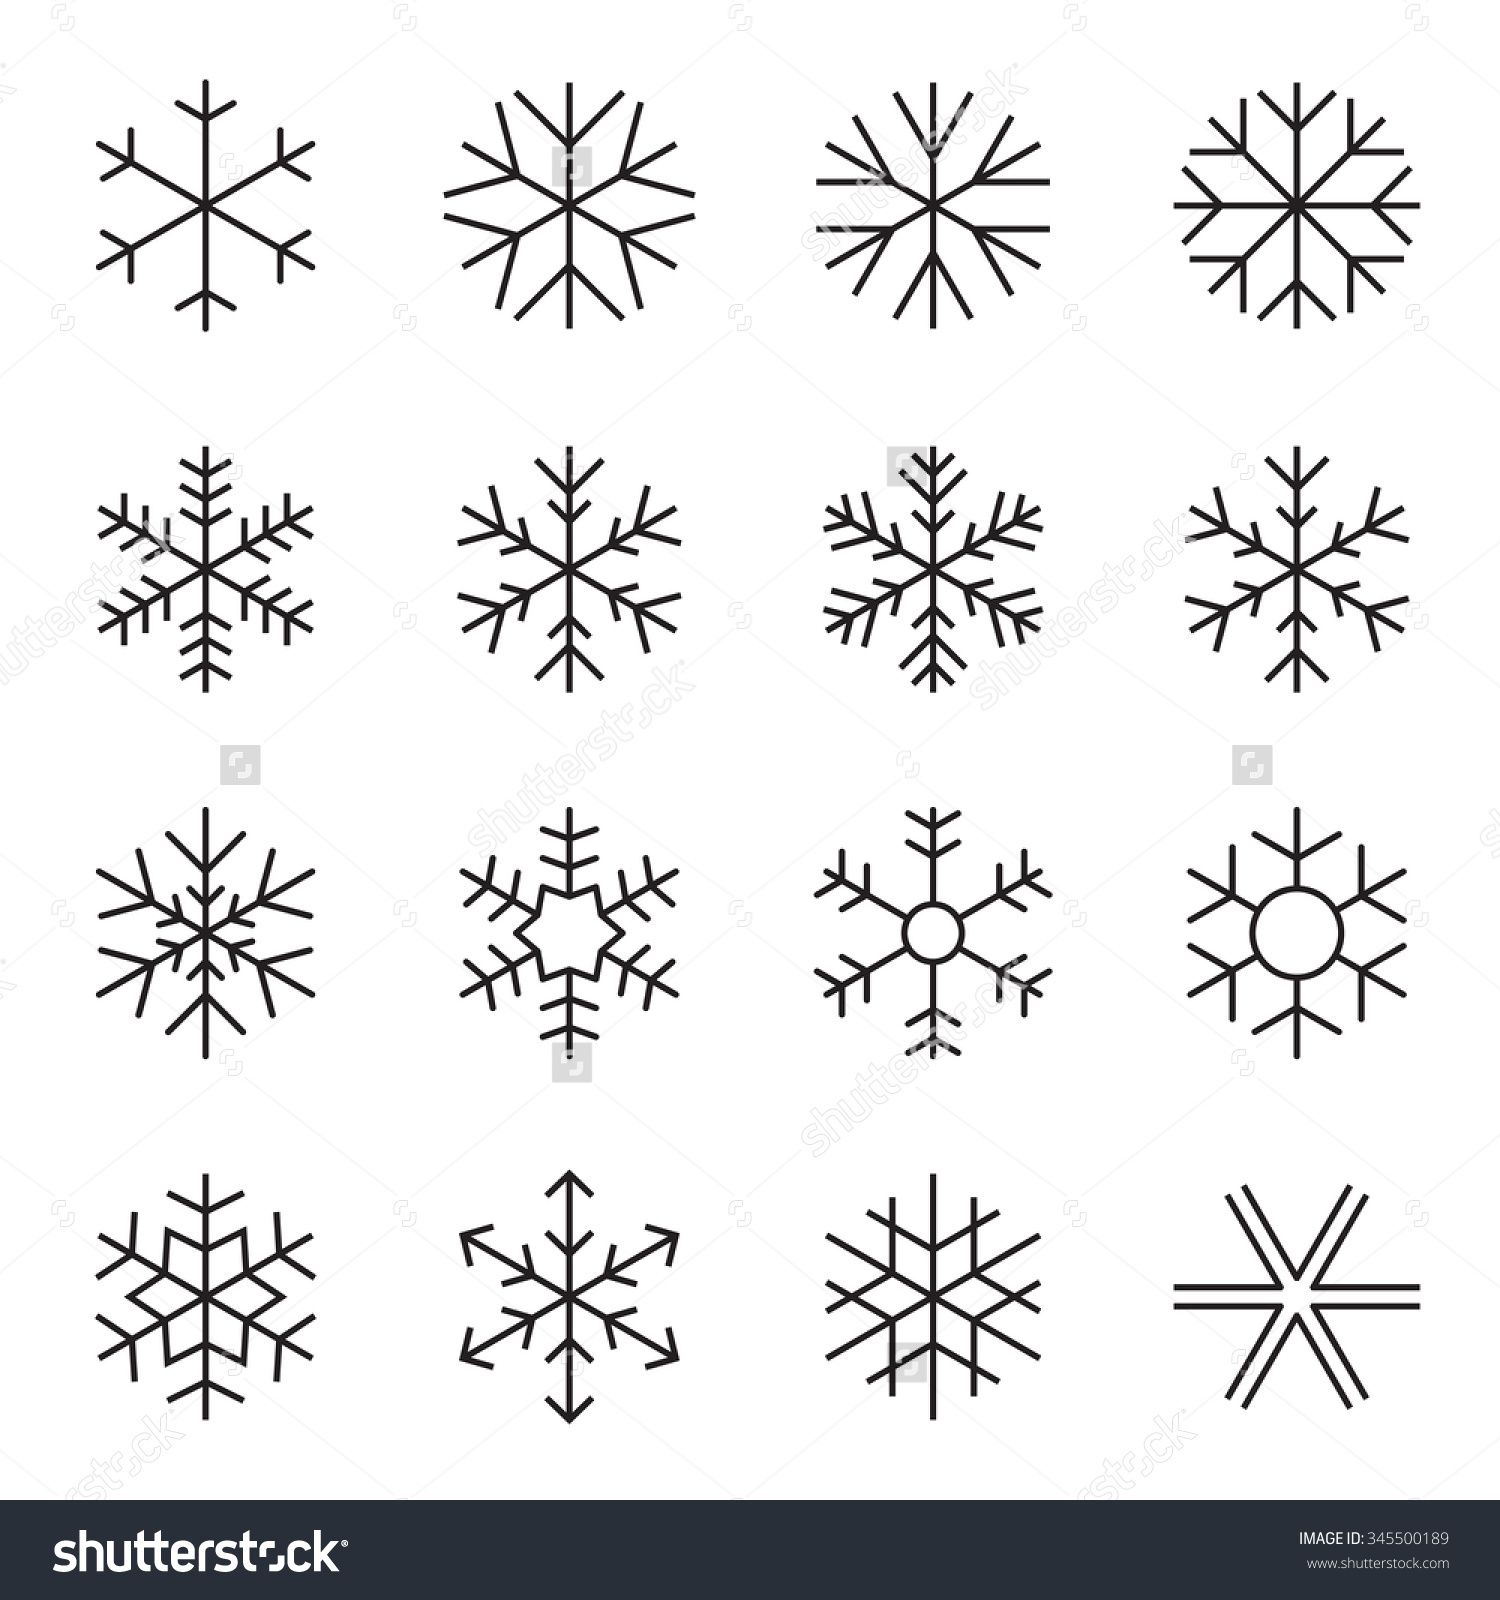 Elements Of Art Line Quizlet : Stock vector thin line simple snowflake icons symbols of